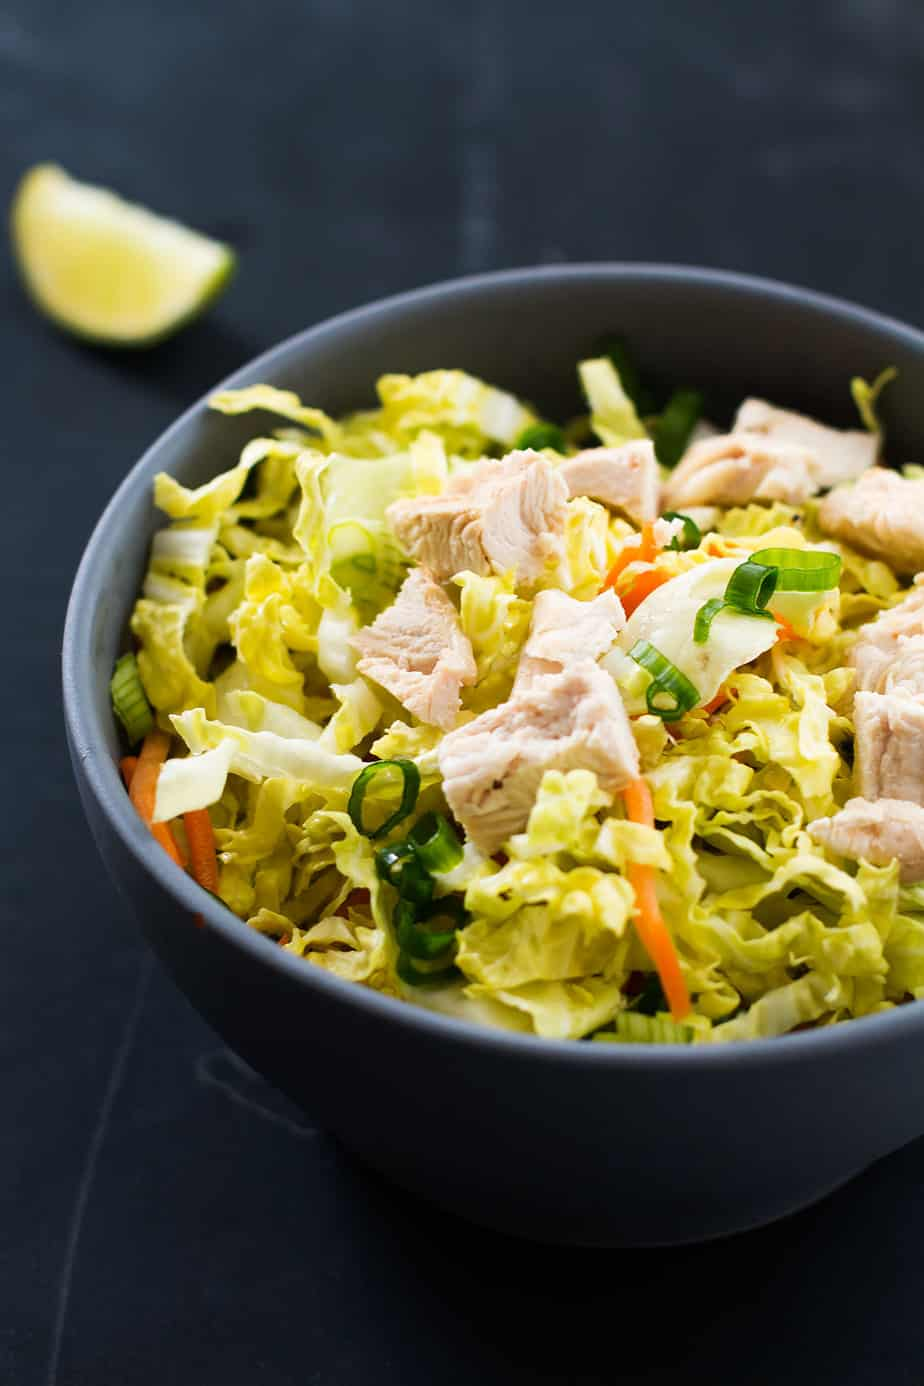 best chicken salad recipe with creamy peanut butter salad dressing